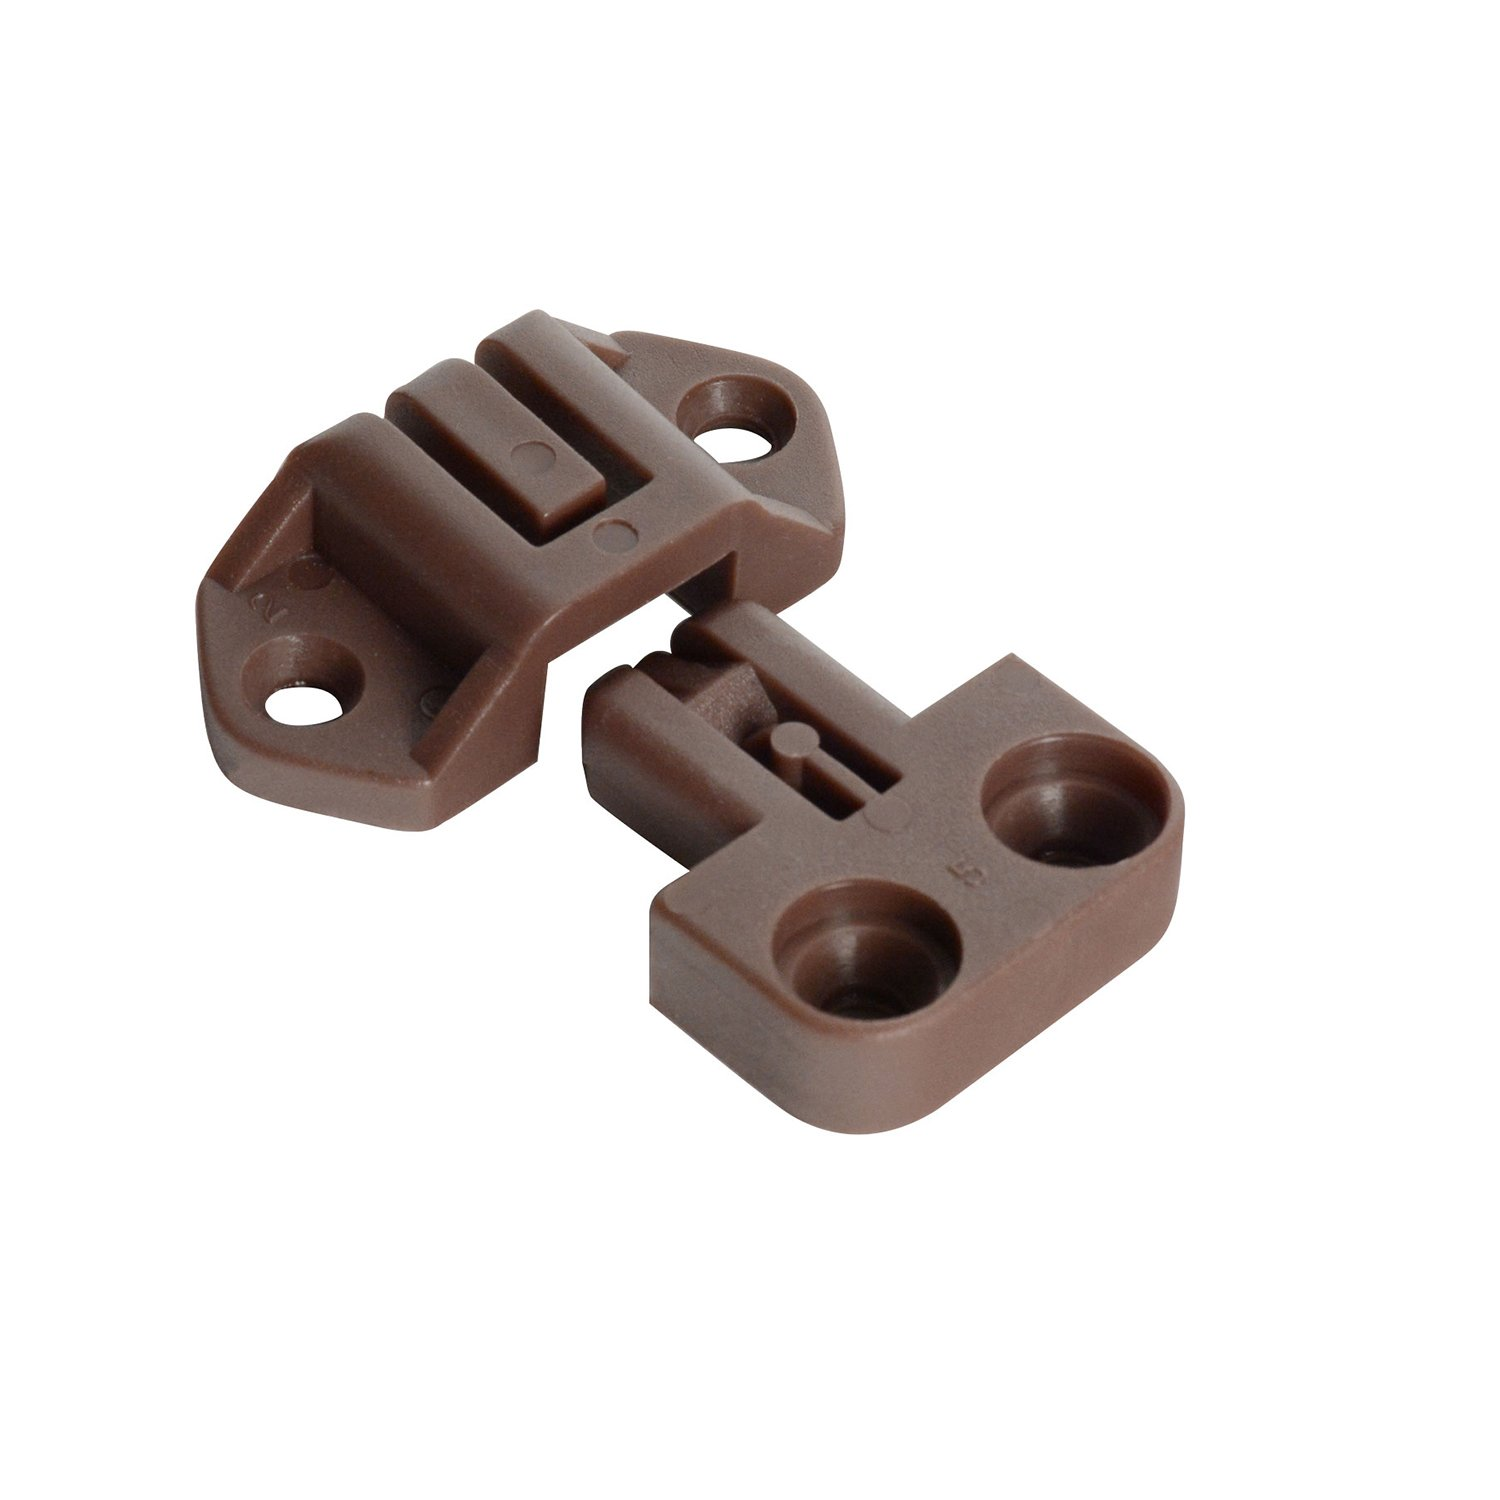 CKP Brand Table Alignment Lock and Strike Brown 4 Pack